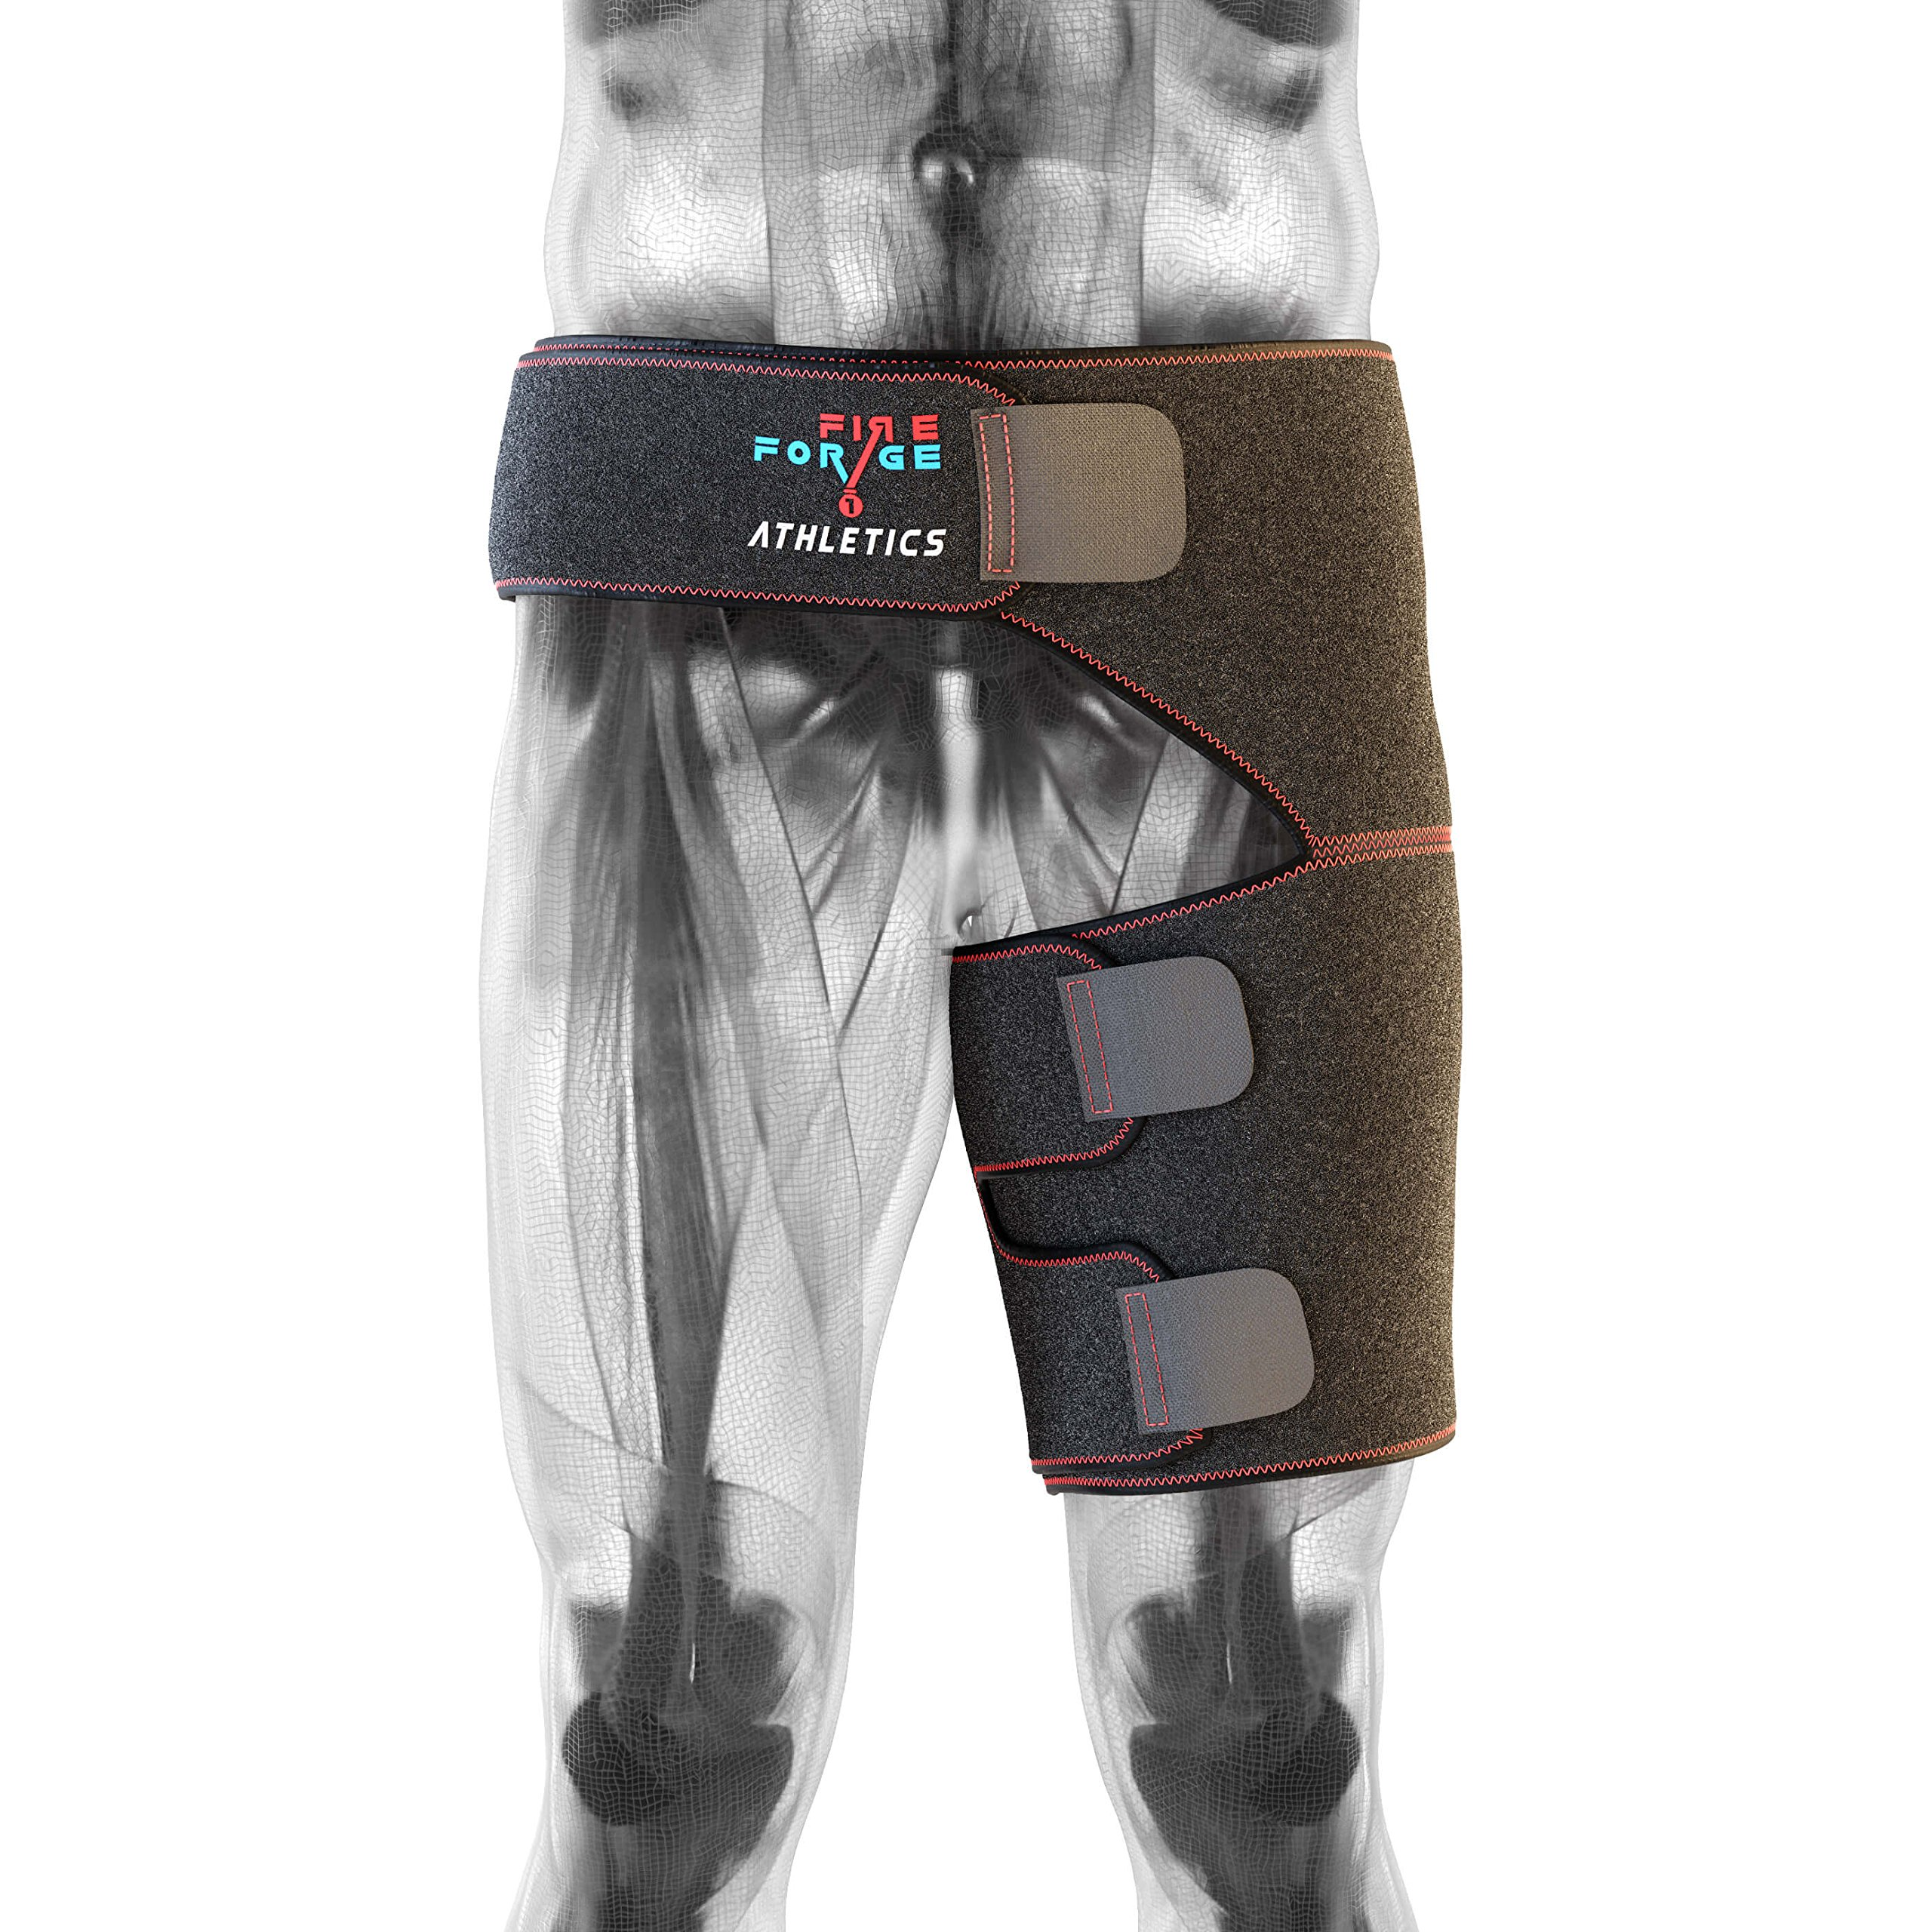 Fire Forge Athletics - Hip Brace Support and Groin Compression Wrap for Pulled Groin and Hamstring, Sciatic Nerve Pain Relief, Hip Flexor, and Arthritis; with Adjustable Leg Sleeve for Men and Women